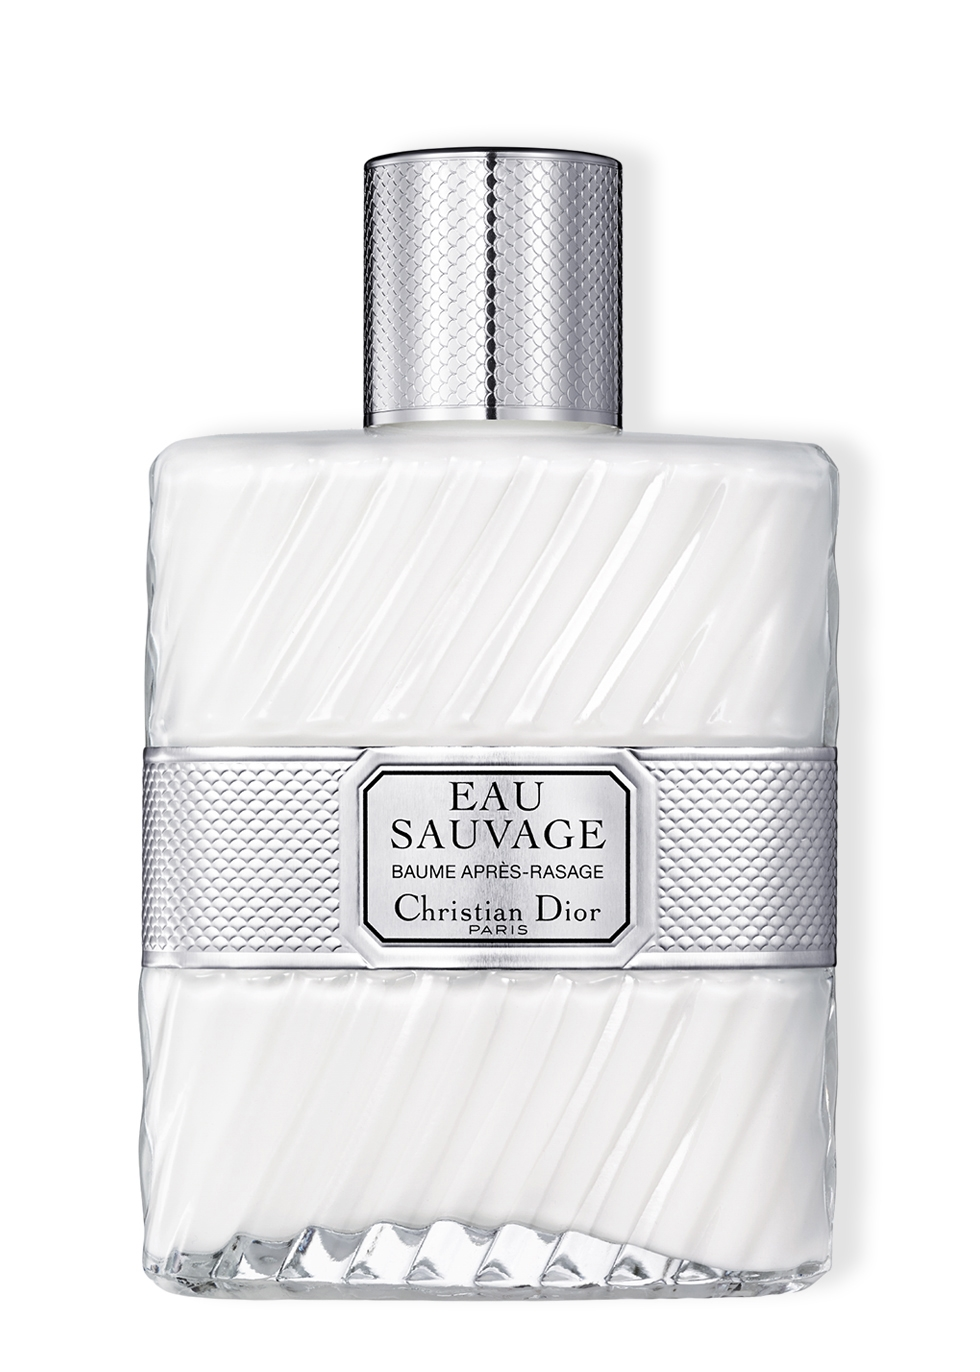 Eau Sauvage After-Shave Balm 100ml - Dior